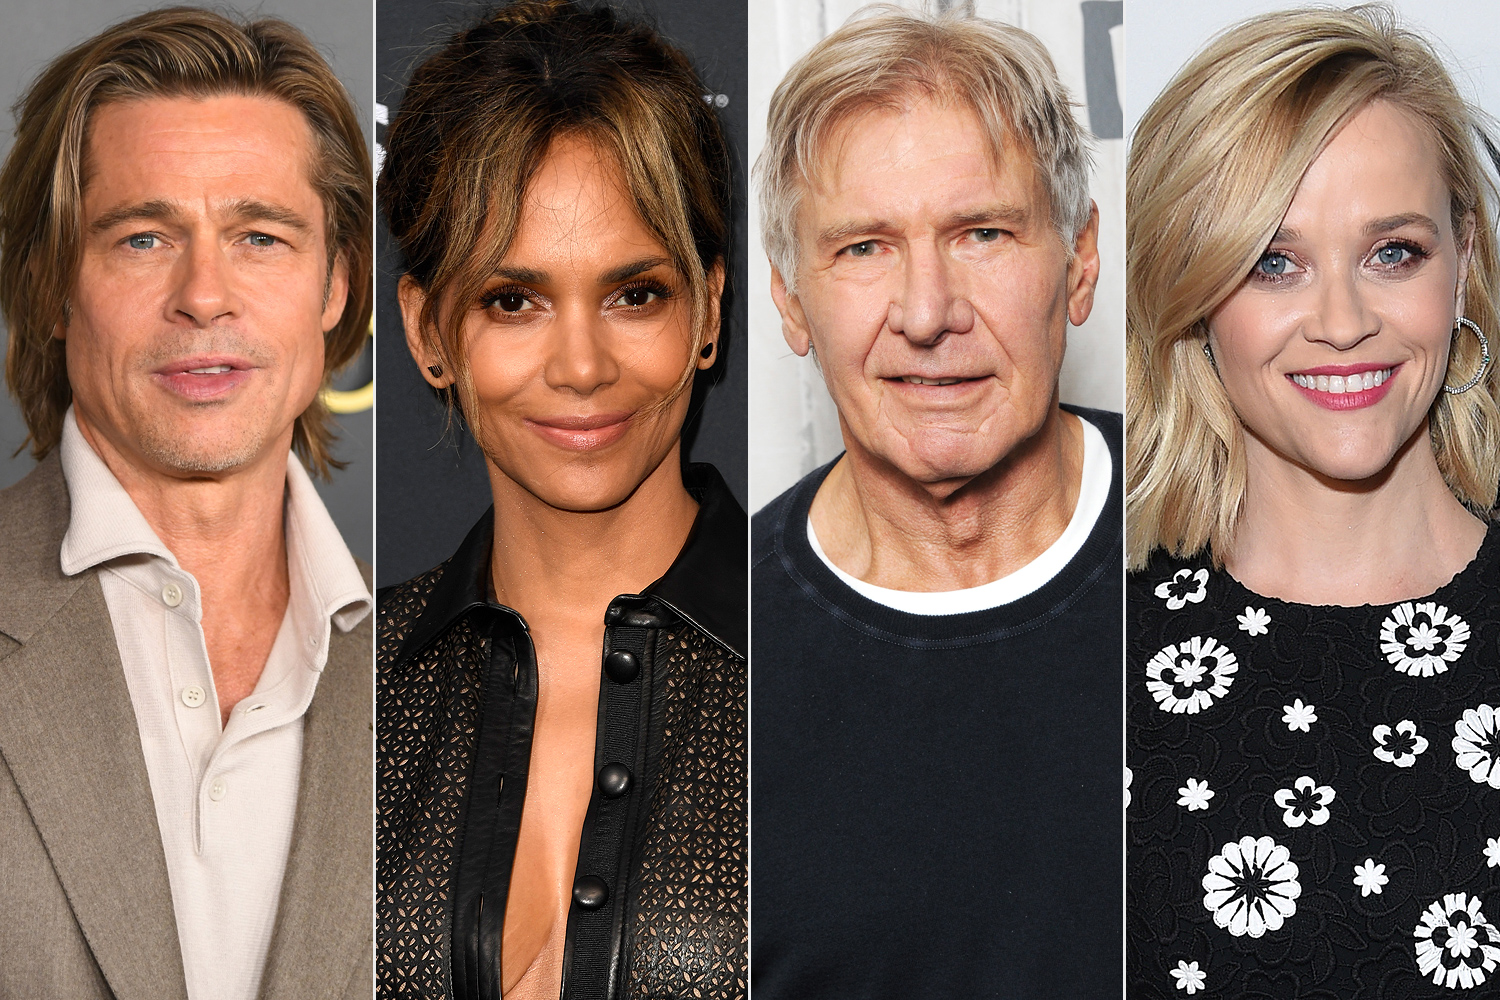 Brad Pitt, Halle Berry, Harrison Ford 및 Reese Witherspoon, 2021 년 오스카상 발표